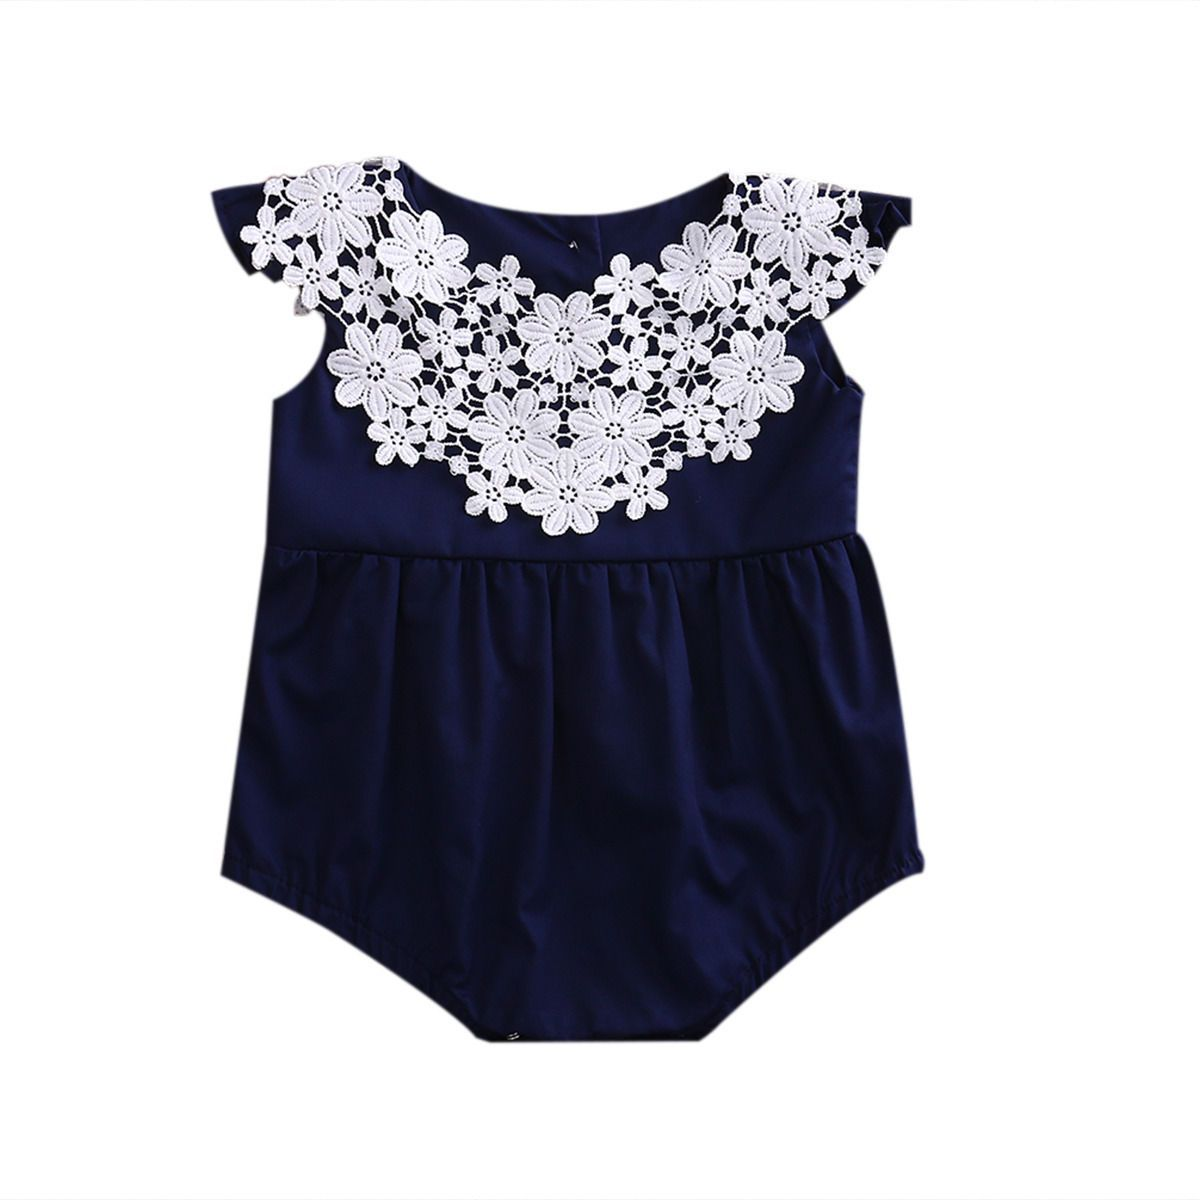 Newborn Baby Girl Lace Stitching Clothes Cotton Romper Navy Blue Jumpsuit Sun-suit Outfits